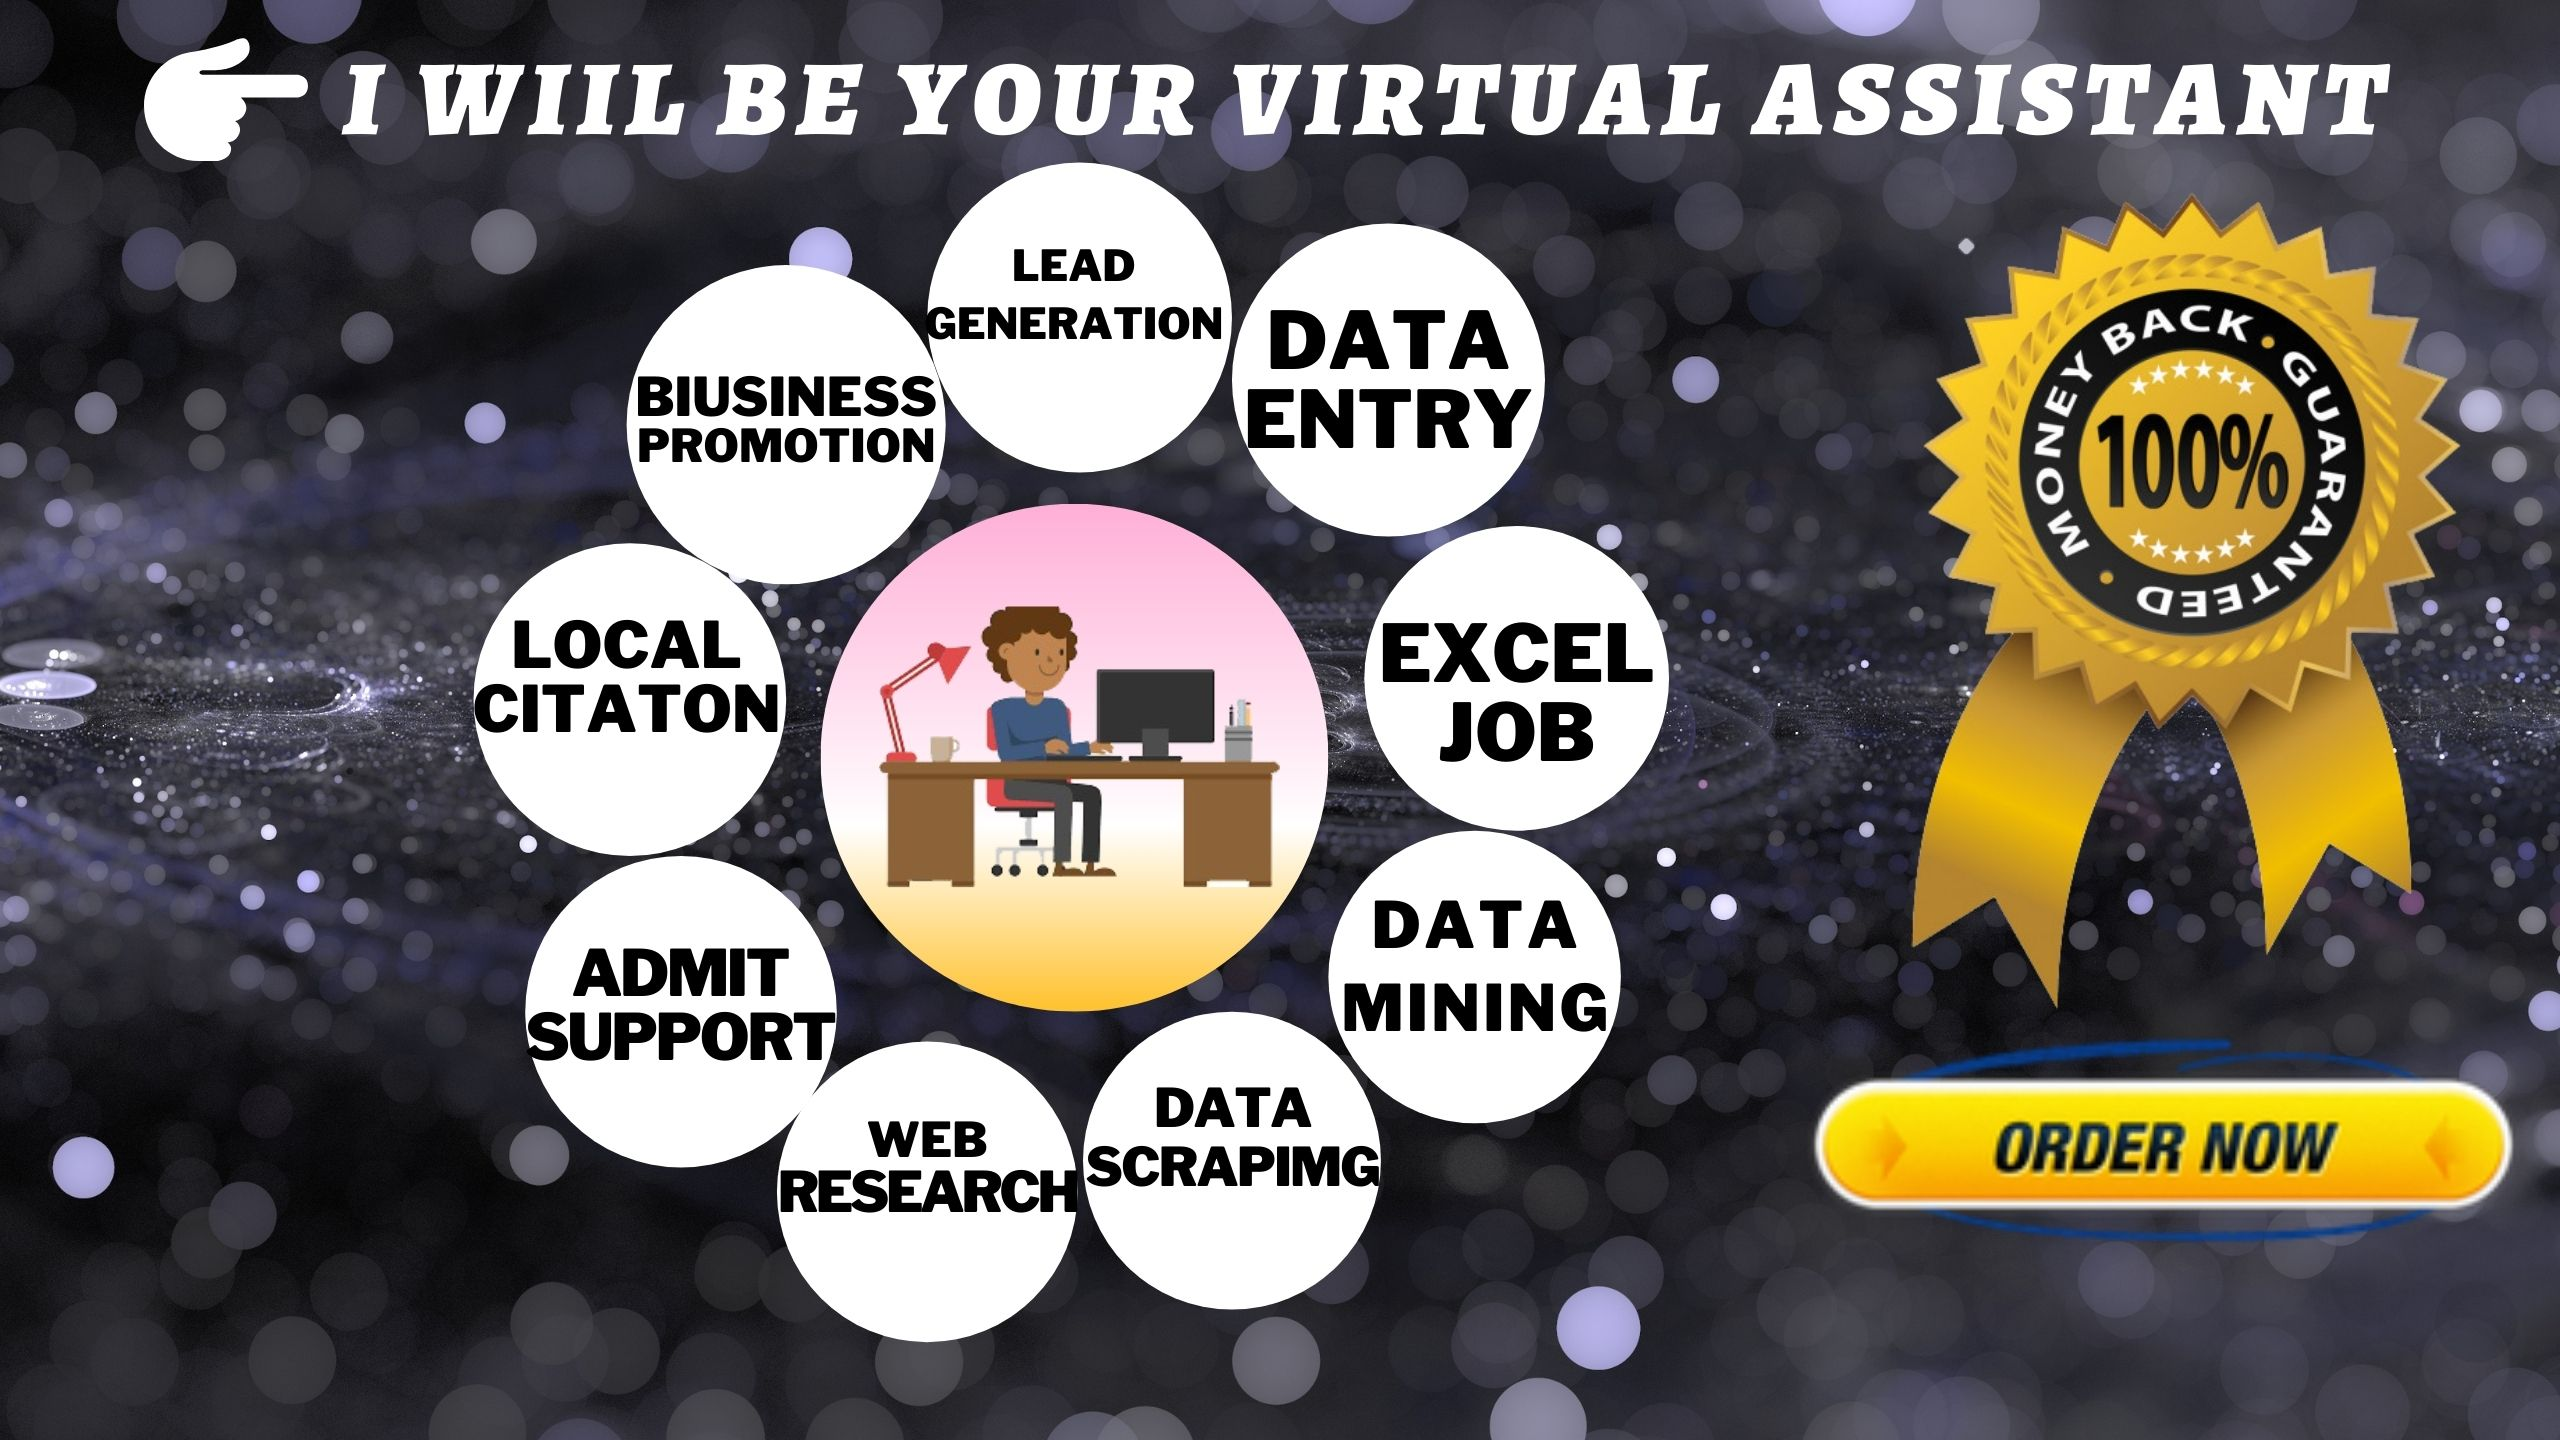 i will be your dependable & affordable Virtual assistant